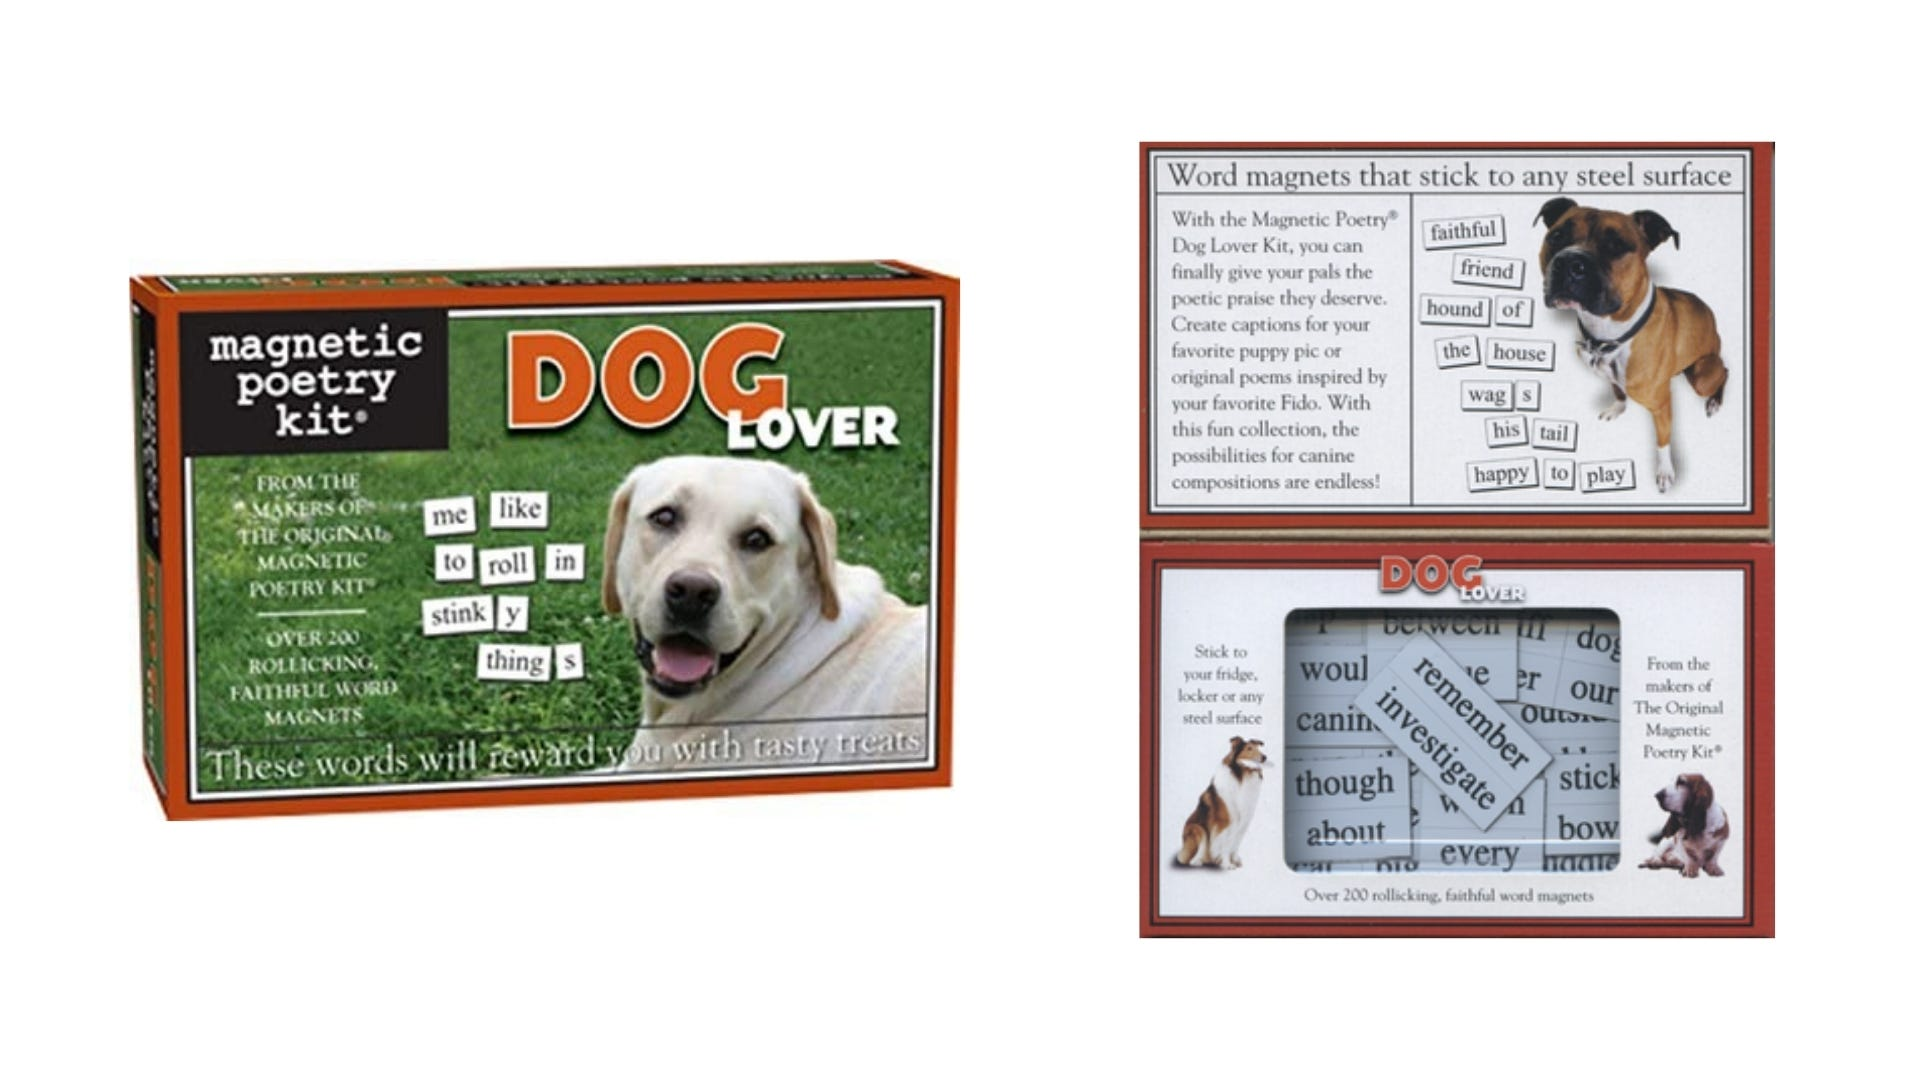 A front and inside view of the Dog Lover Magnetic Poetry kit